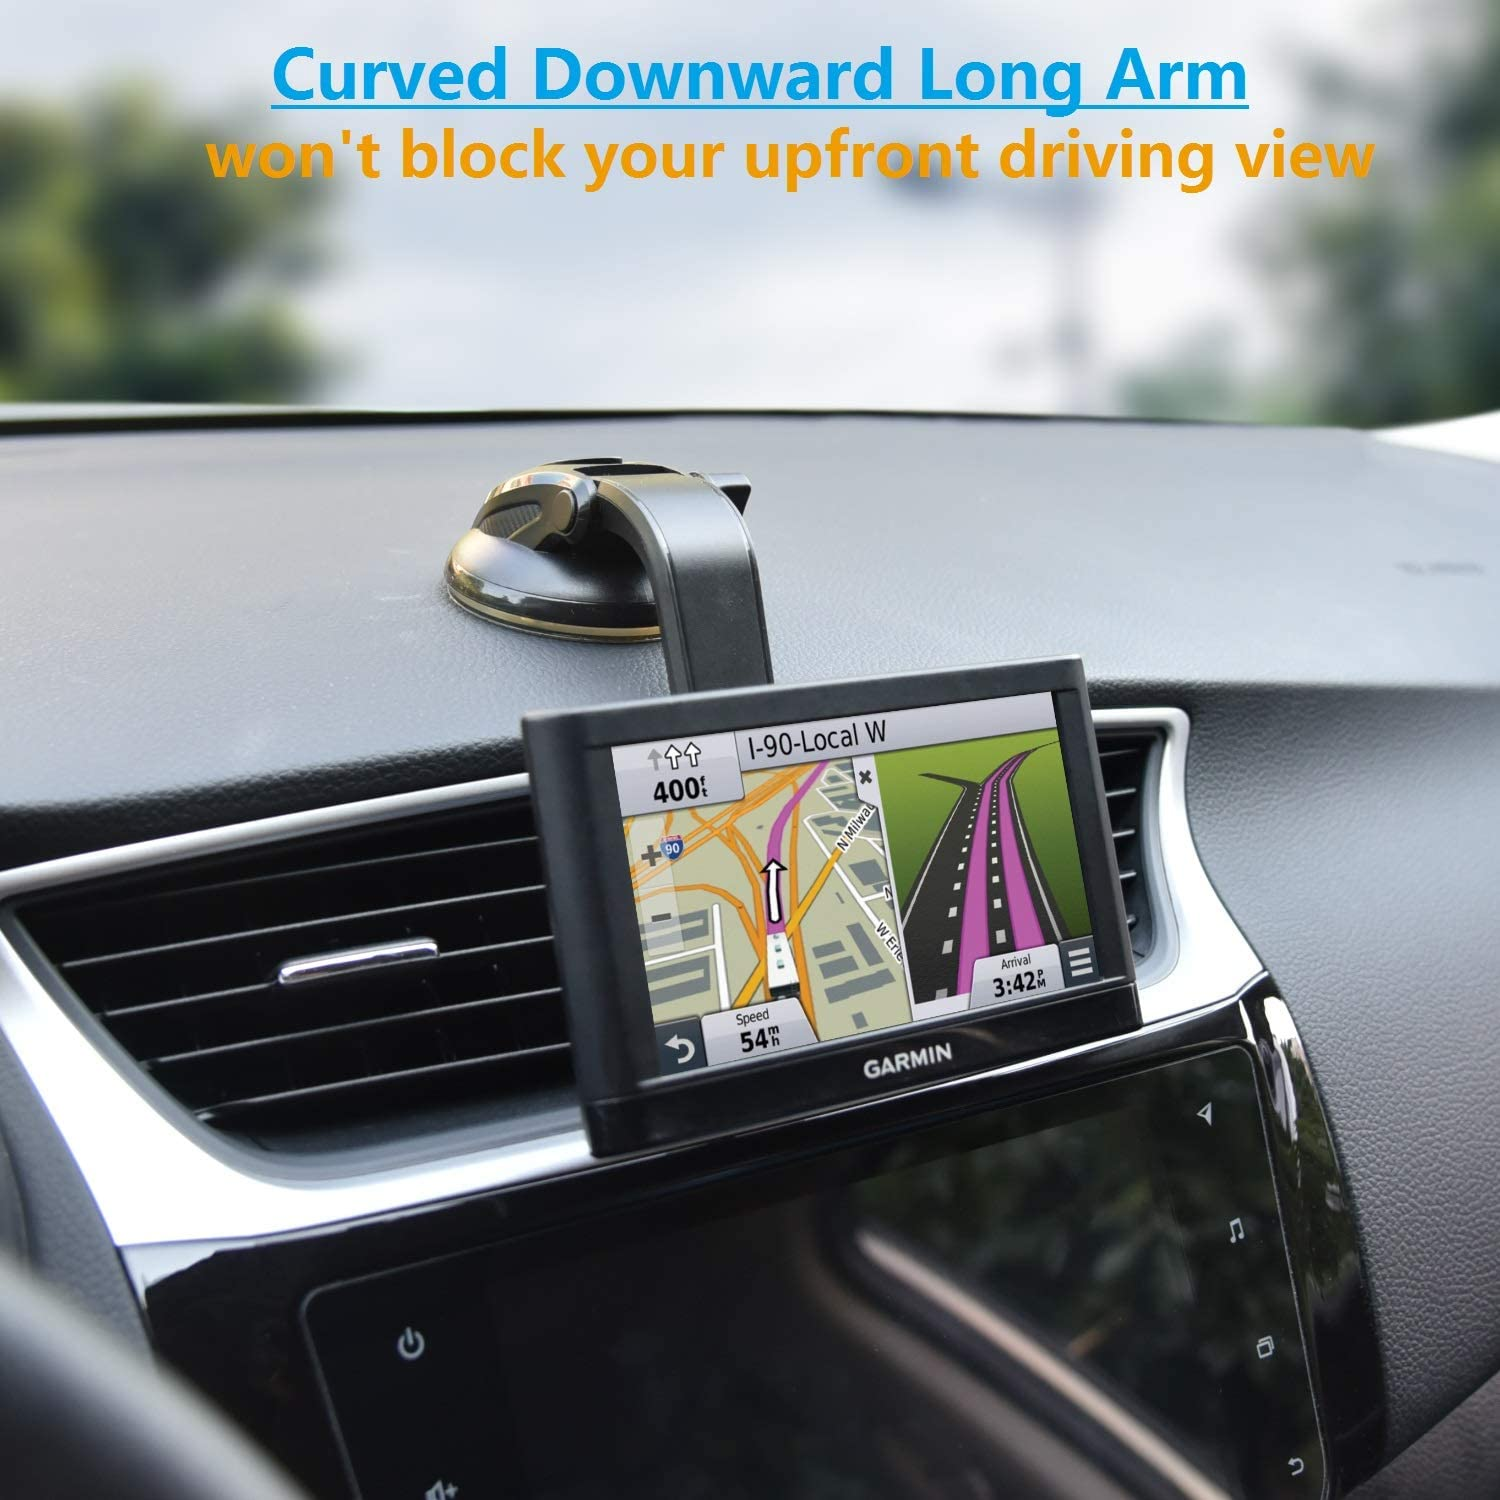 GPS Dashboard Mount with Adjustable Curved Arm Industrial-Strength Gel Suction Cup Dash Windshield Mount Upgraded GPS Holder for Car Garmin Nuvi Dezl DriveSmart StreetPilot Zumo Driveassist DriveLuxe